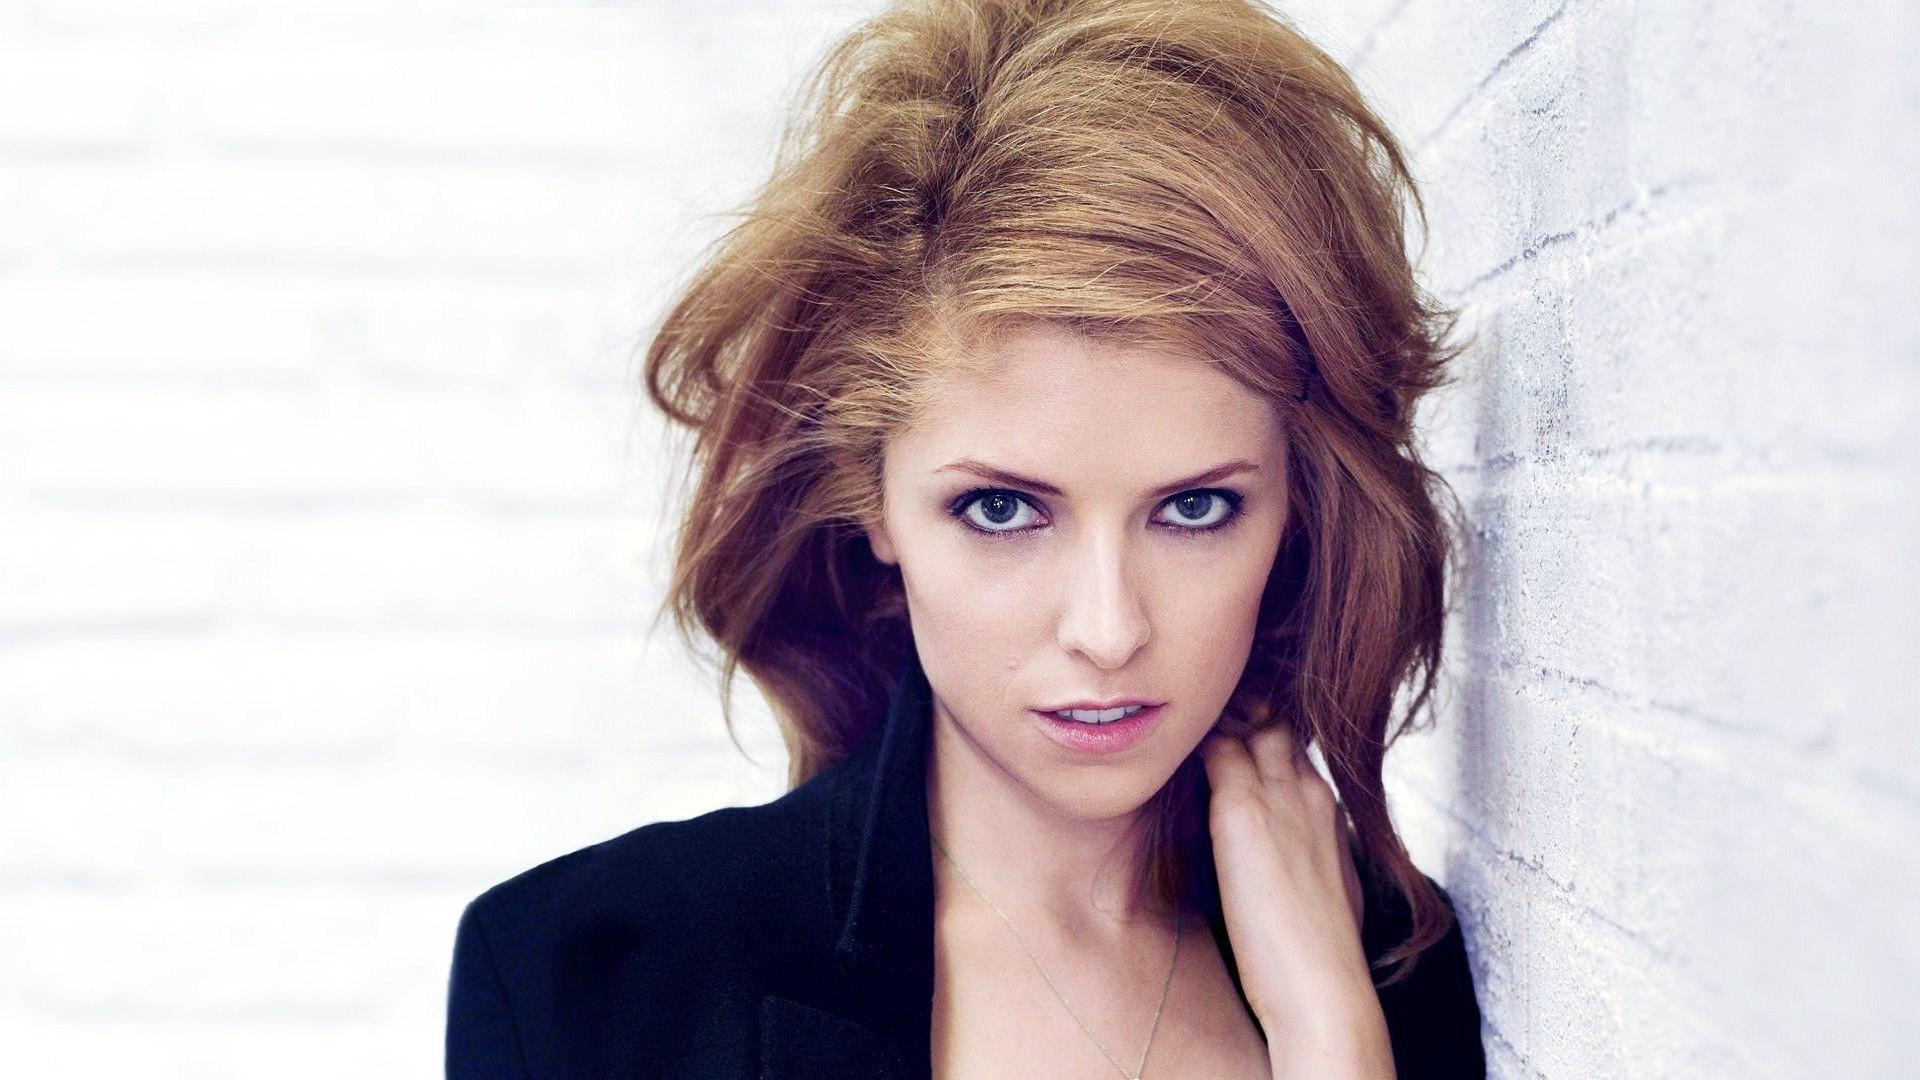 anna-kendrick-background-hd-1920×1080-wallpaper-wp3602619